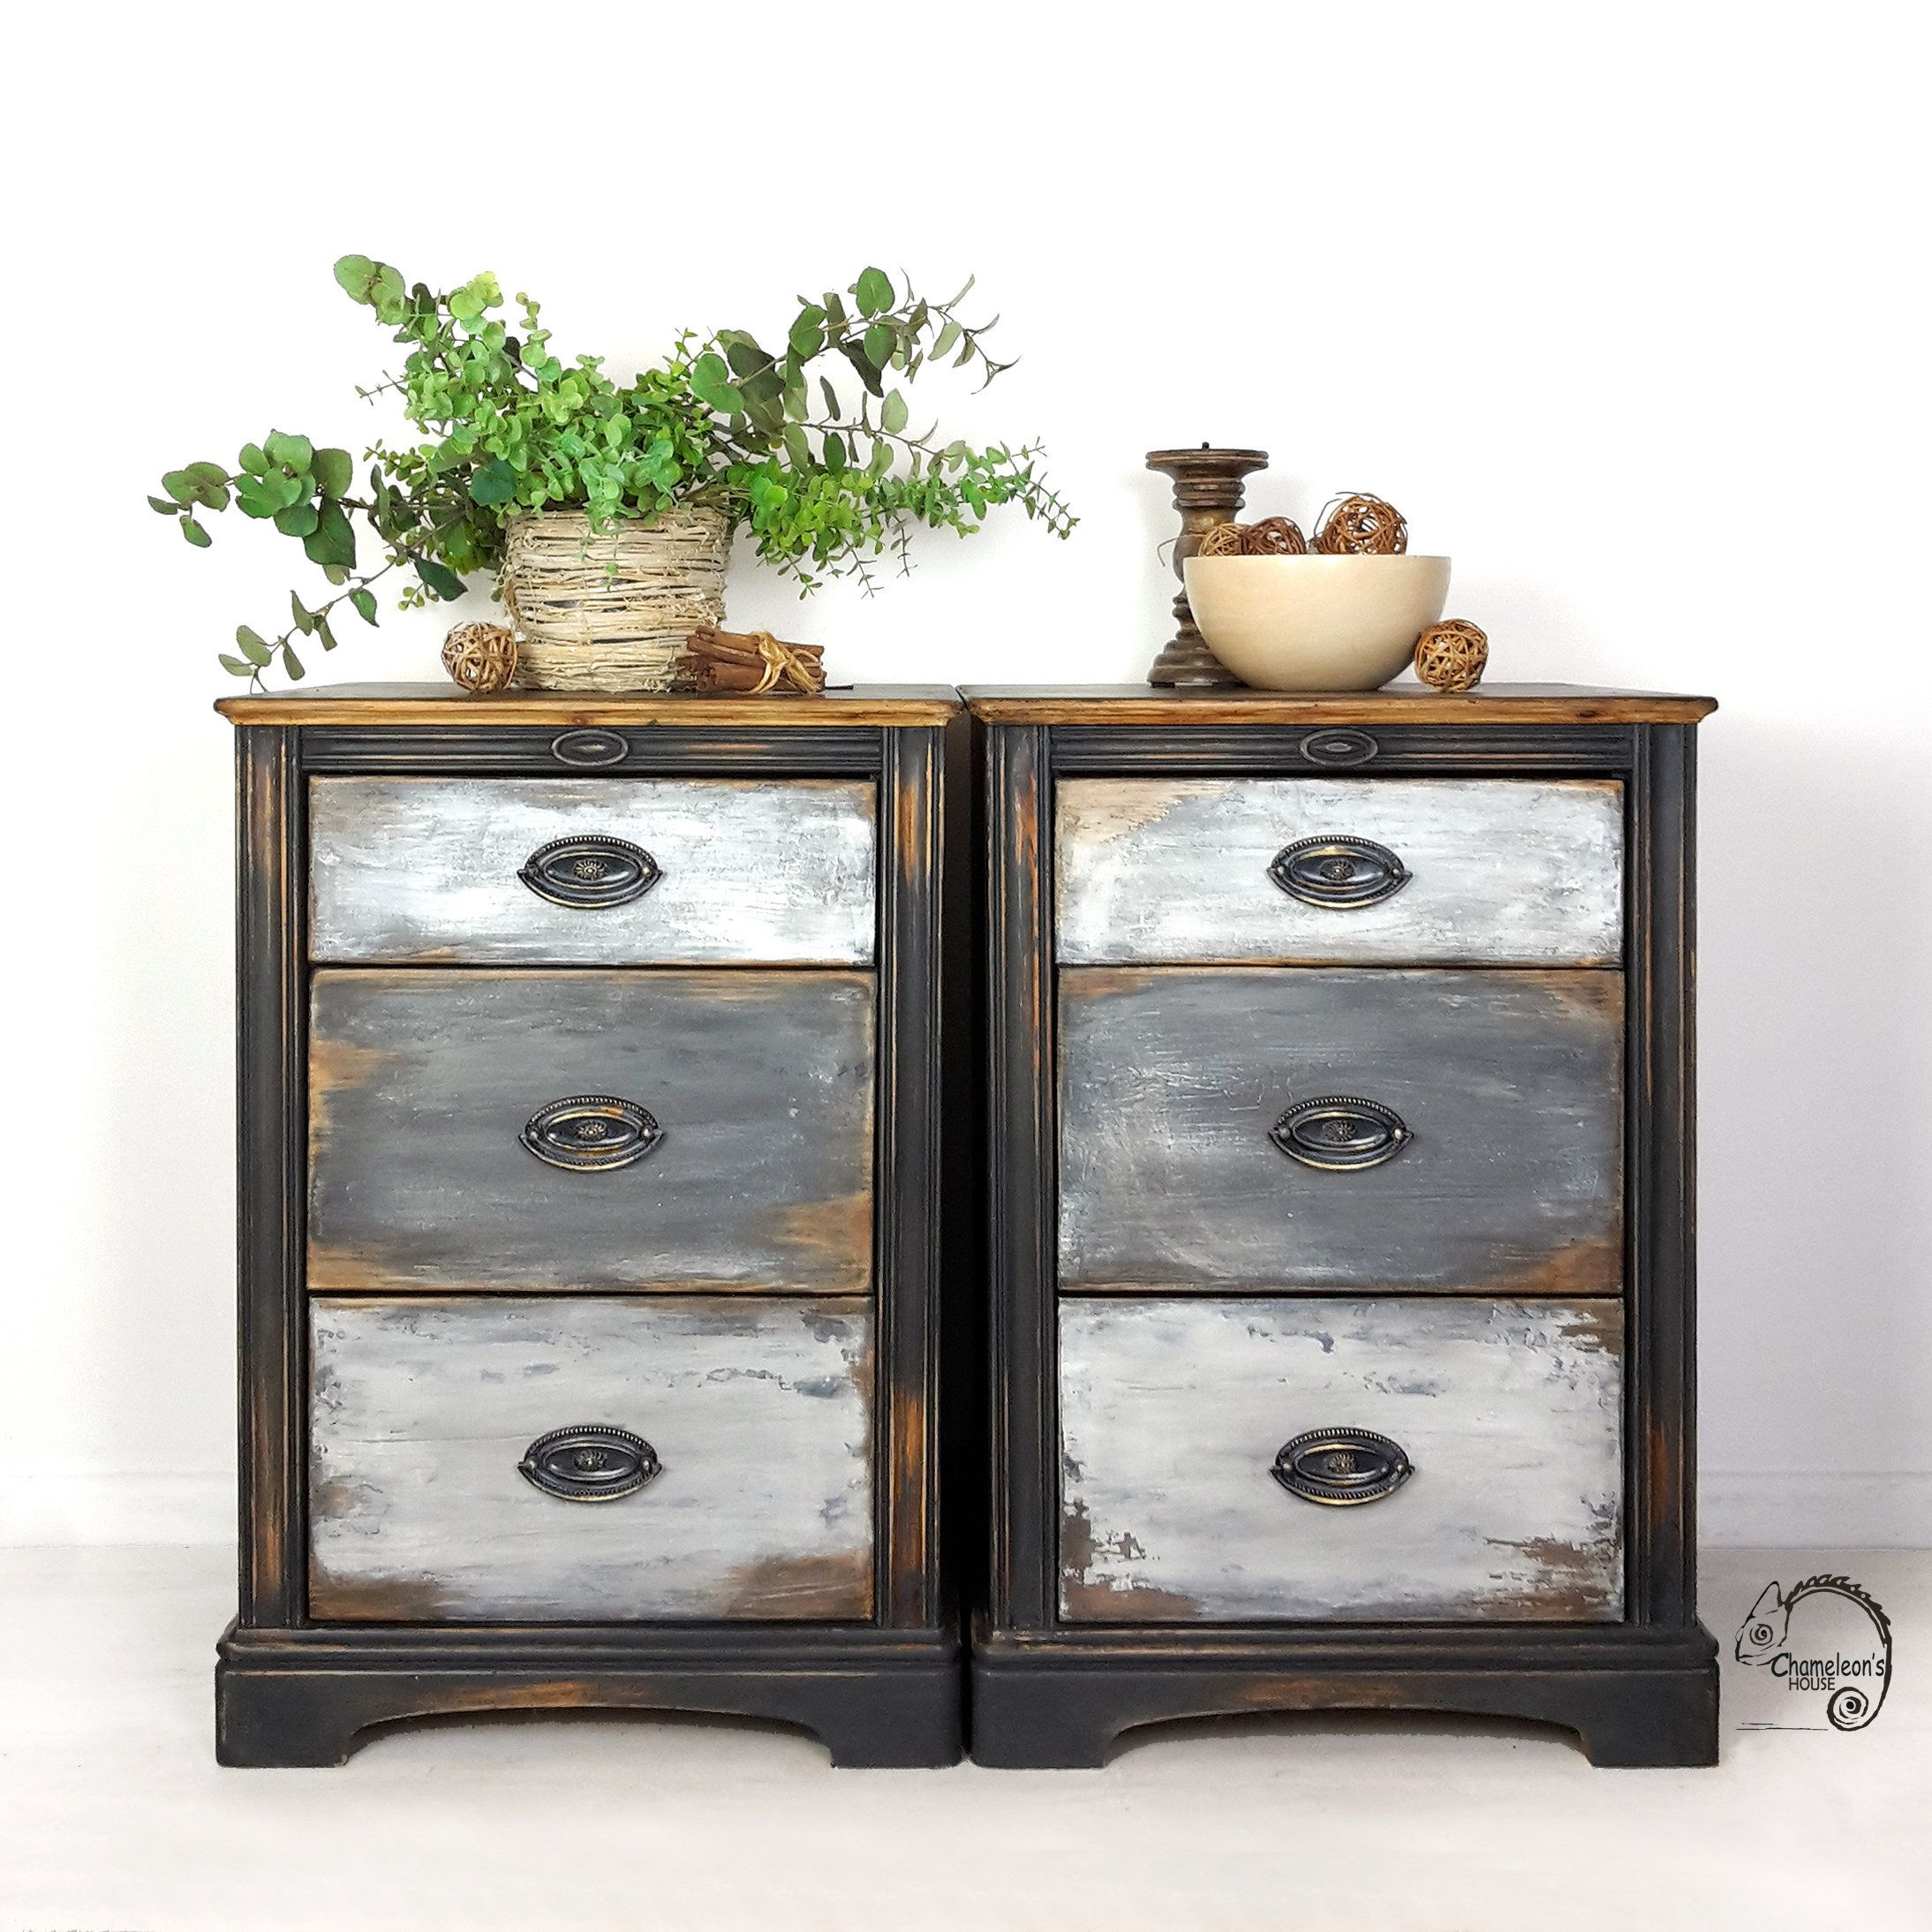 Pair Of Painted Bedside Tables Bedside Cabinets With Drawers Distressed Furniture Painted Drawers Hand Painted Furniture Uk Painted Bedside Tables Distressed Furniture Painting Vintage Industrial Furniture